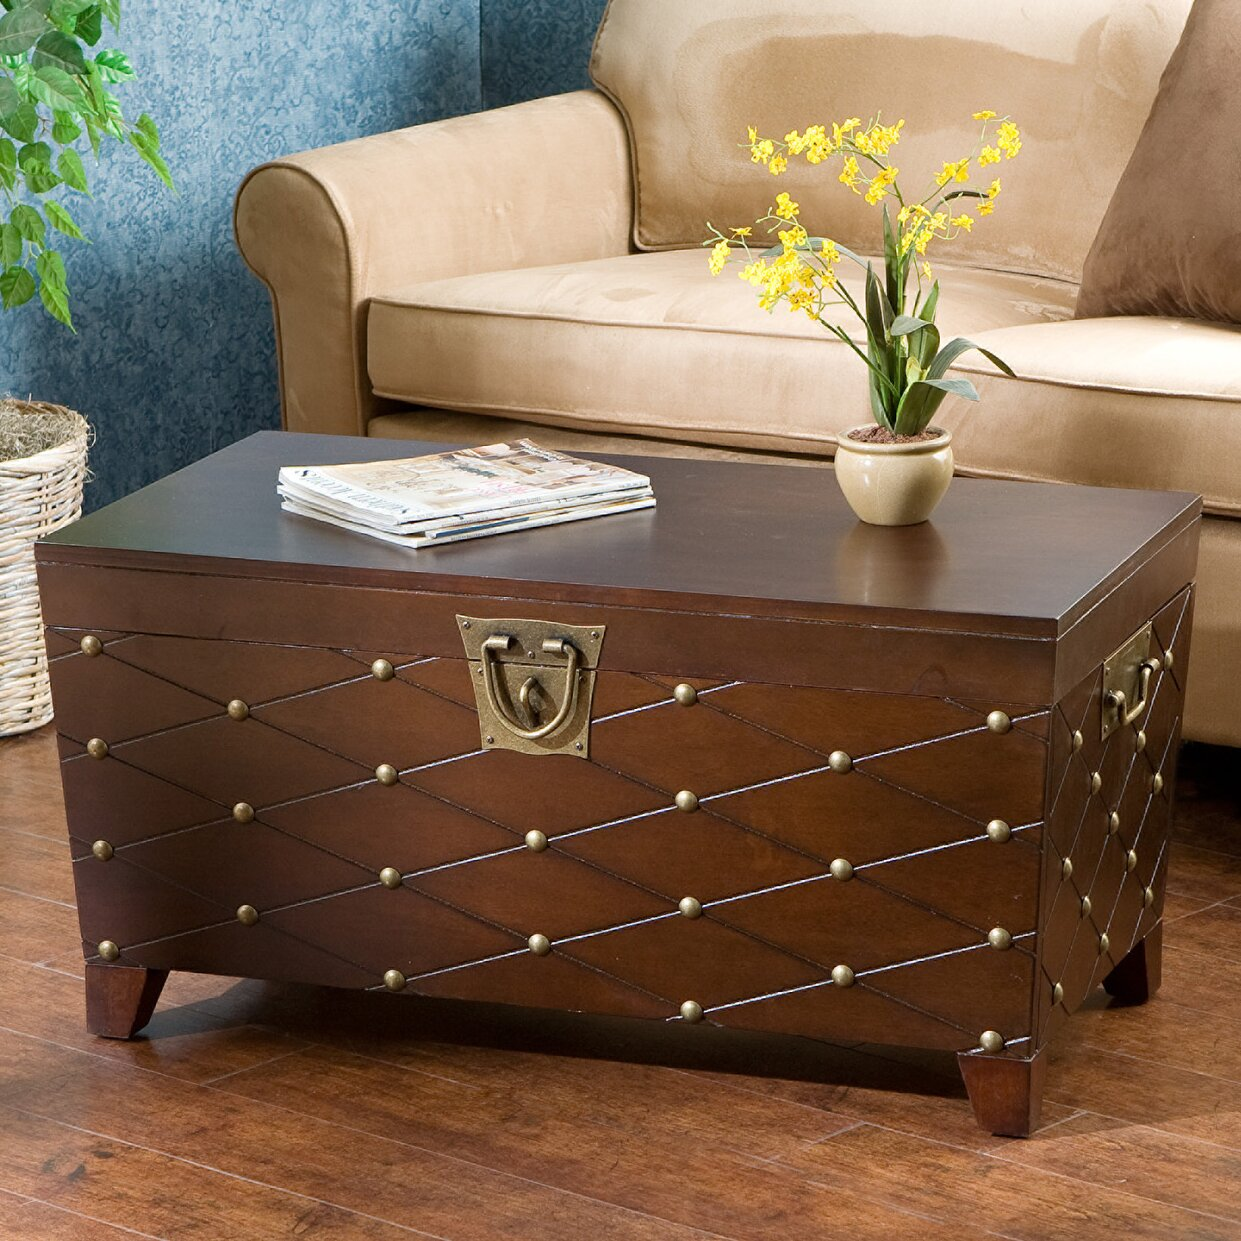 Astoria grand cainhoe nailhead trunk coffee table reviews wayfair Trunk coffee tables